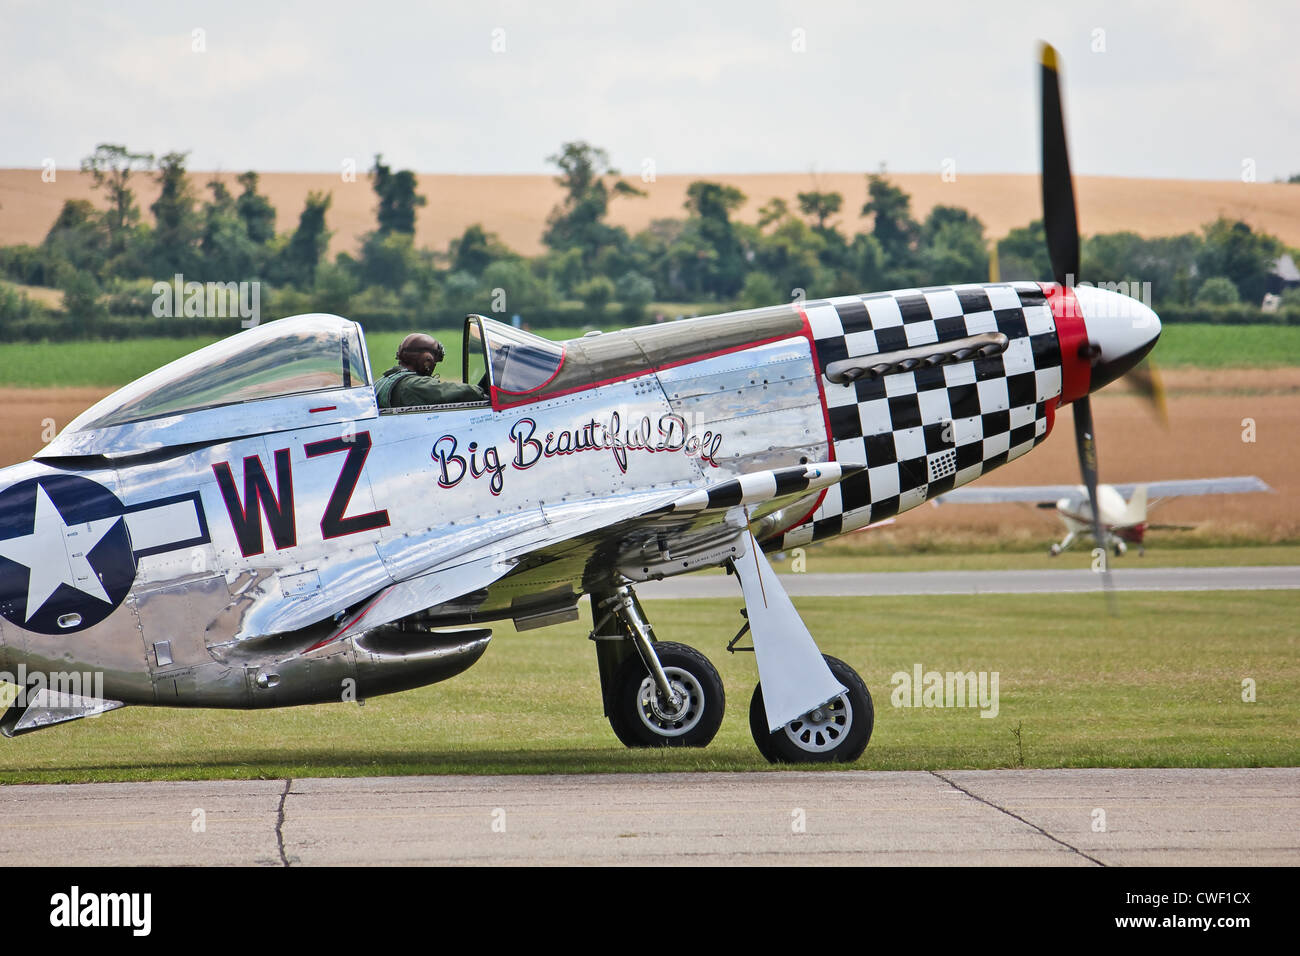 P51 Mustang Big Beautiful Doll taxiing for takeoff - Stock Image